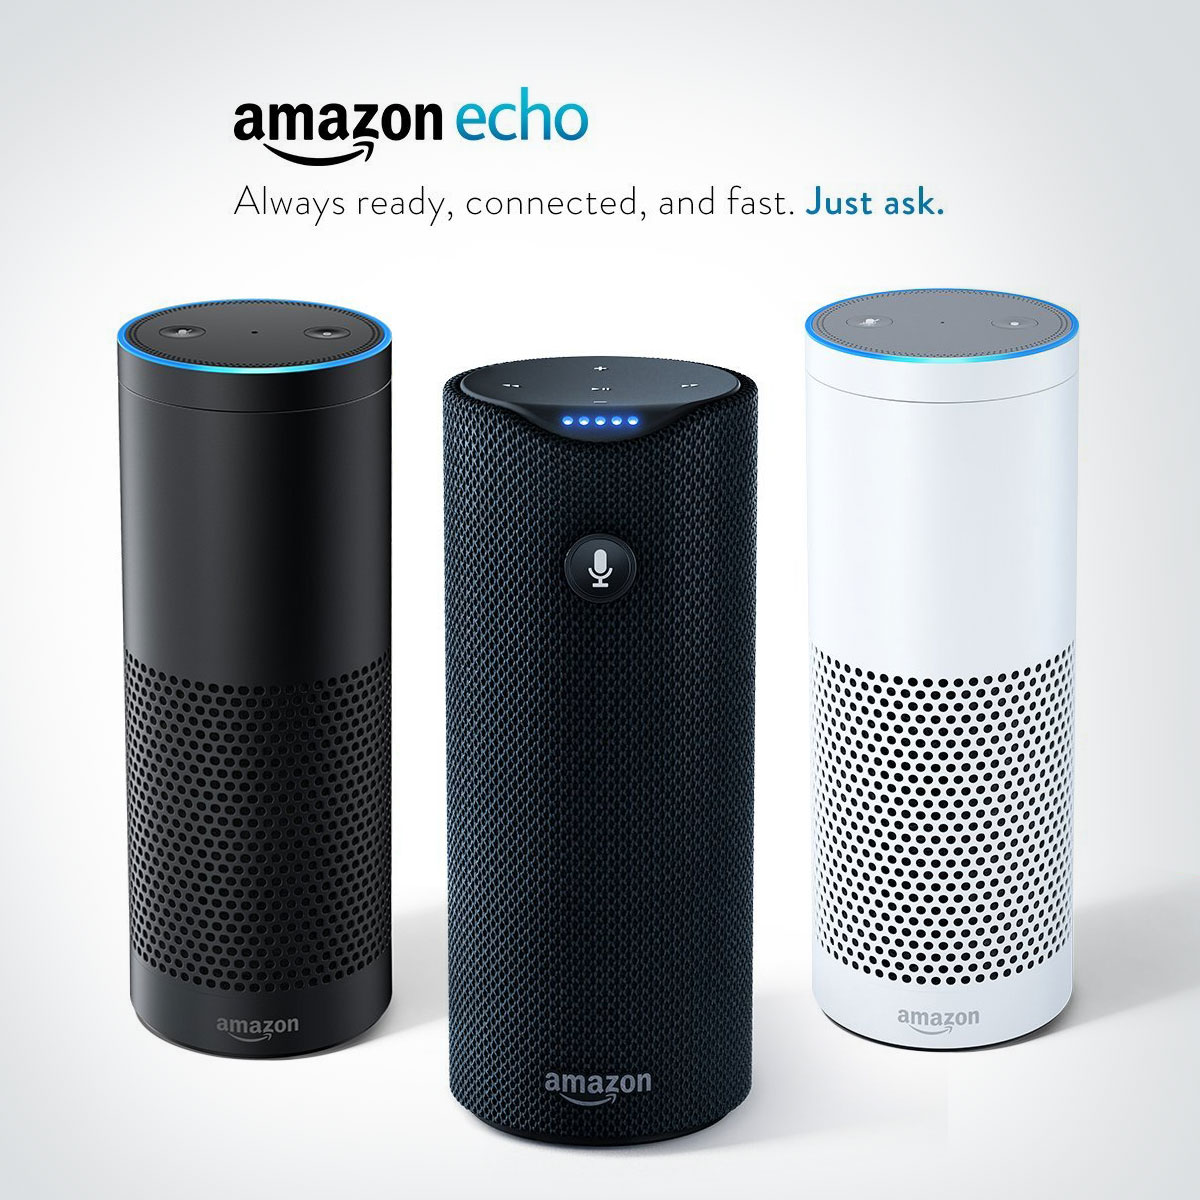 amazon-echo-worlds-best-gadget-2017